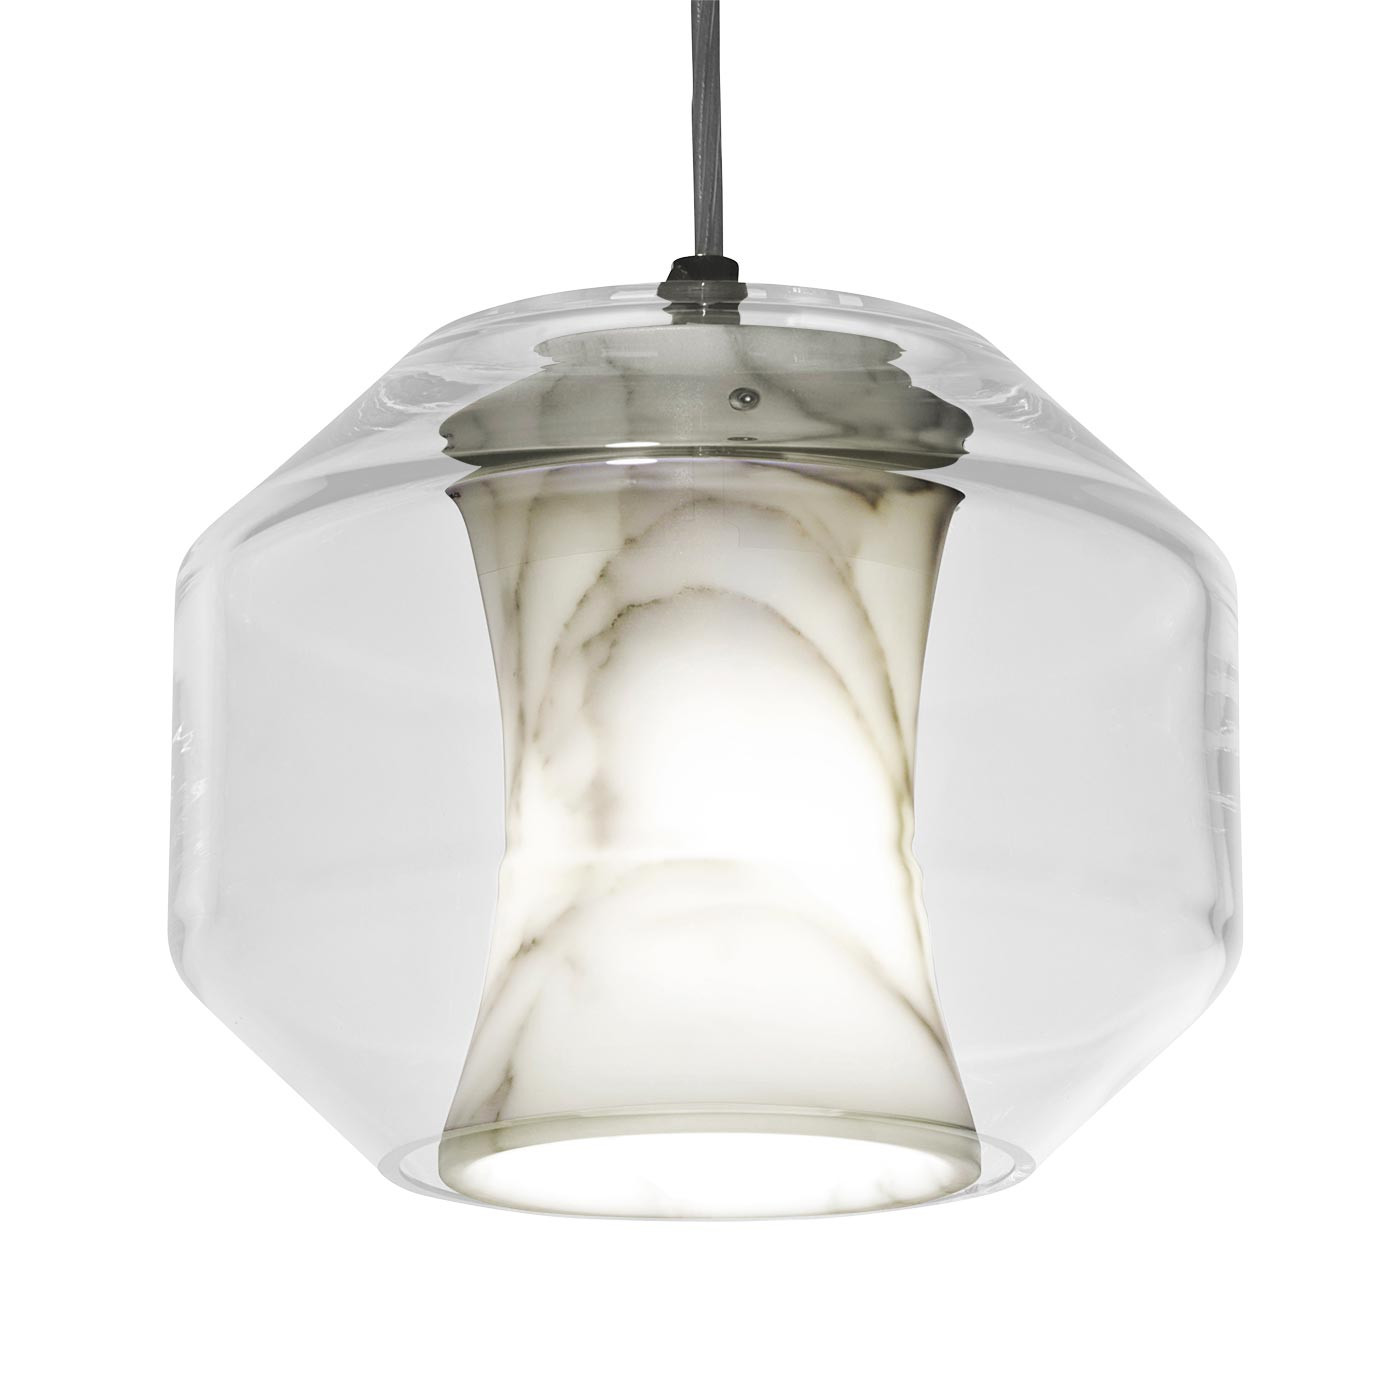 Lee Broom Chamber Small Pendelleuchte